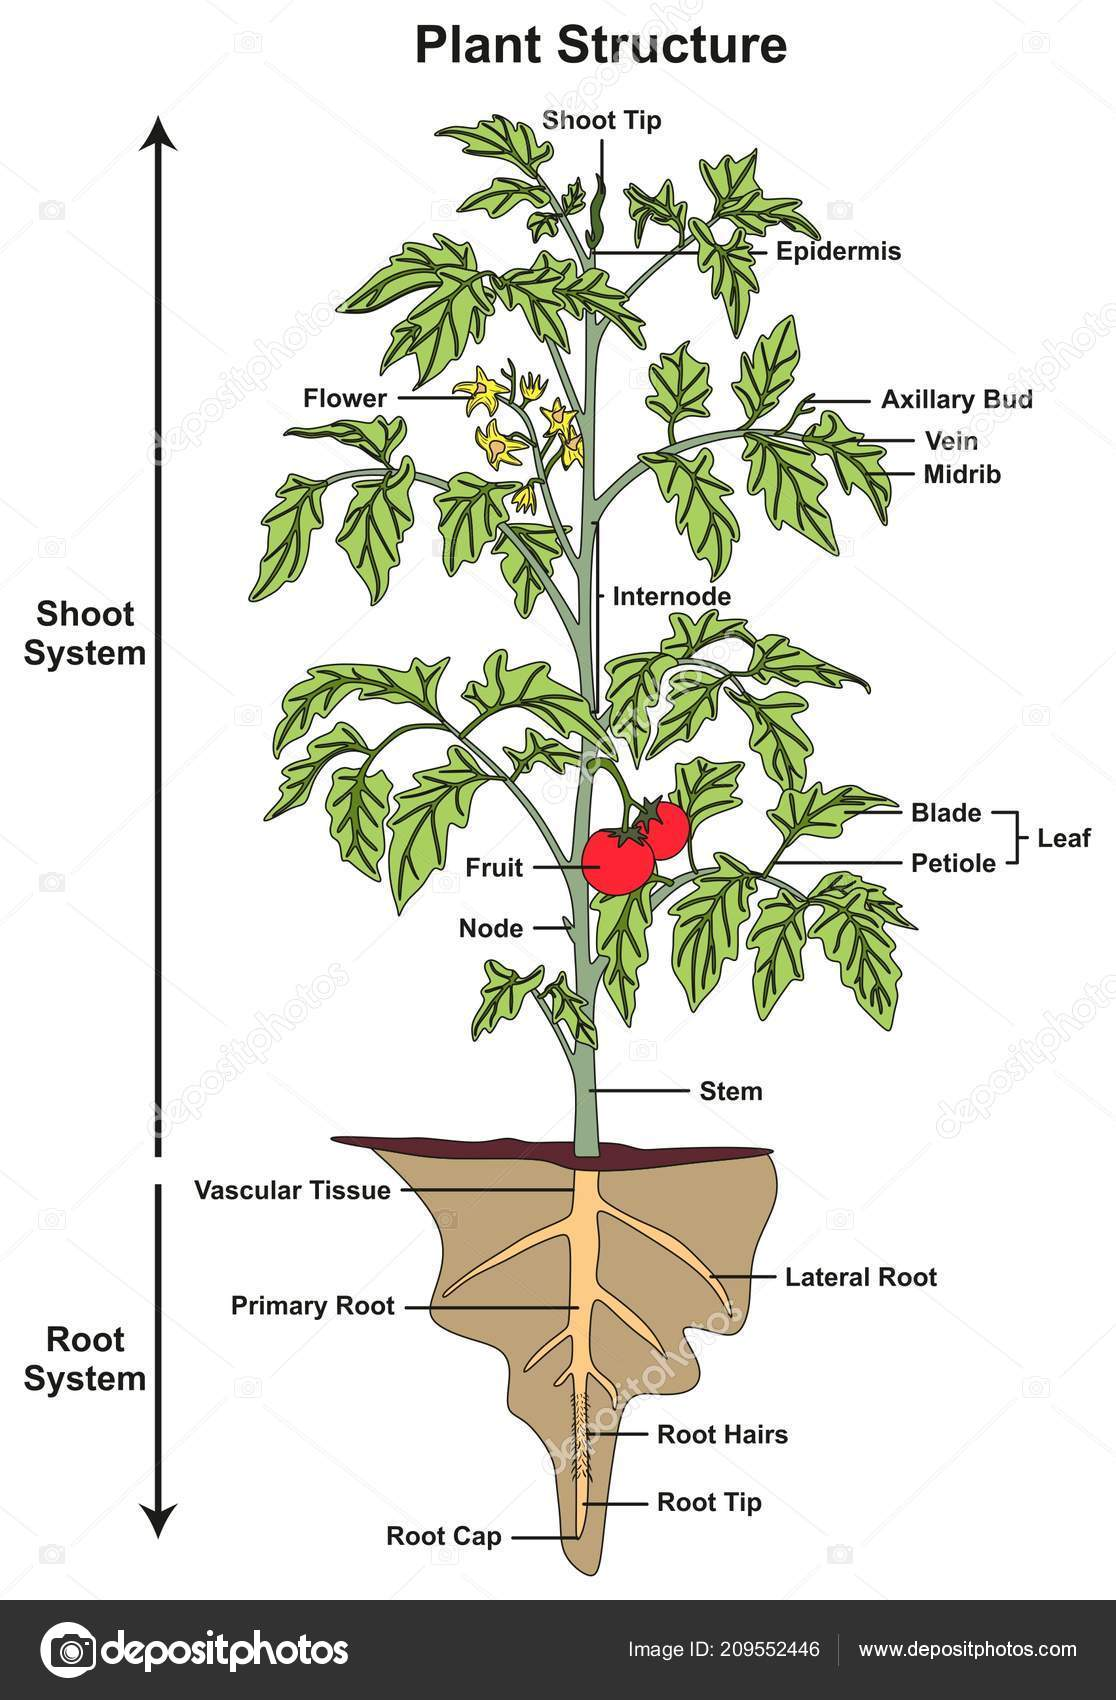 hight resolution of plant structure infographic diagram including all parts shoot rootplant structure infographic diagram including all parts of